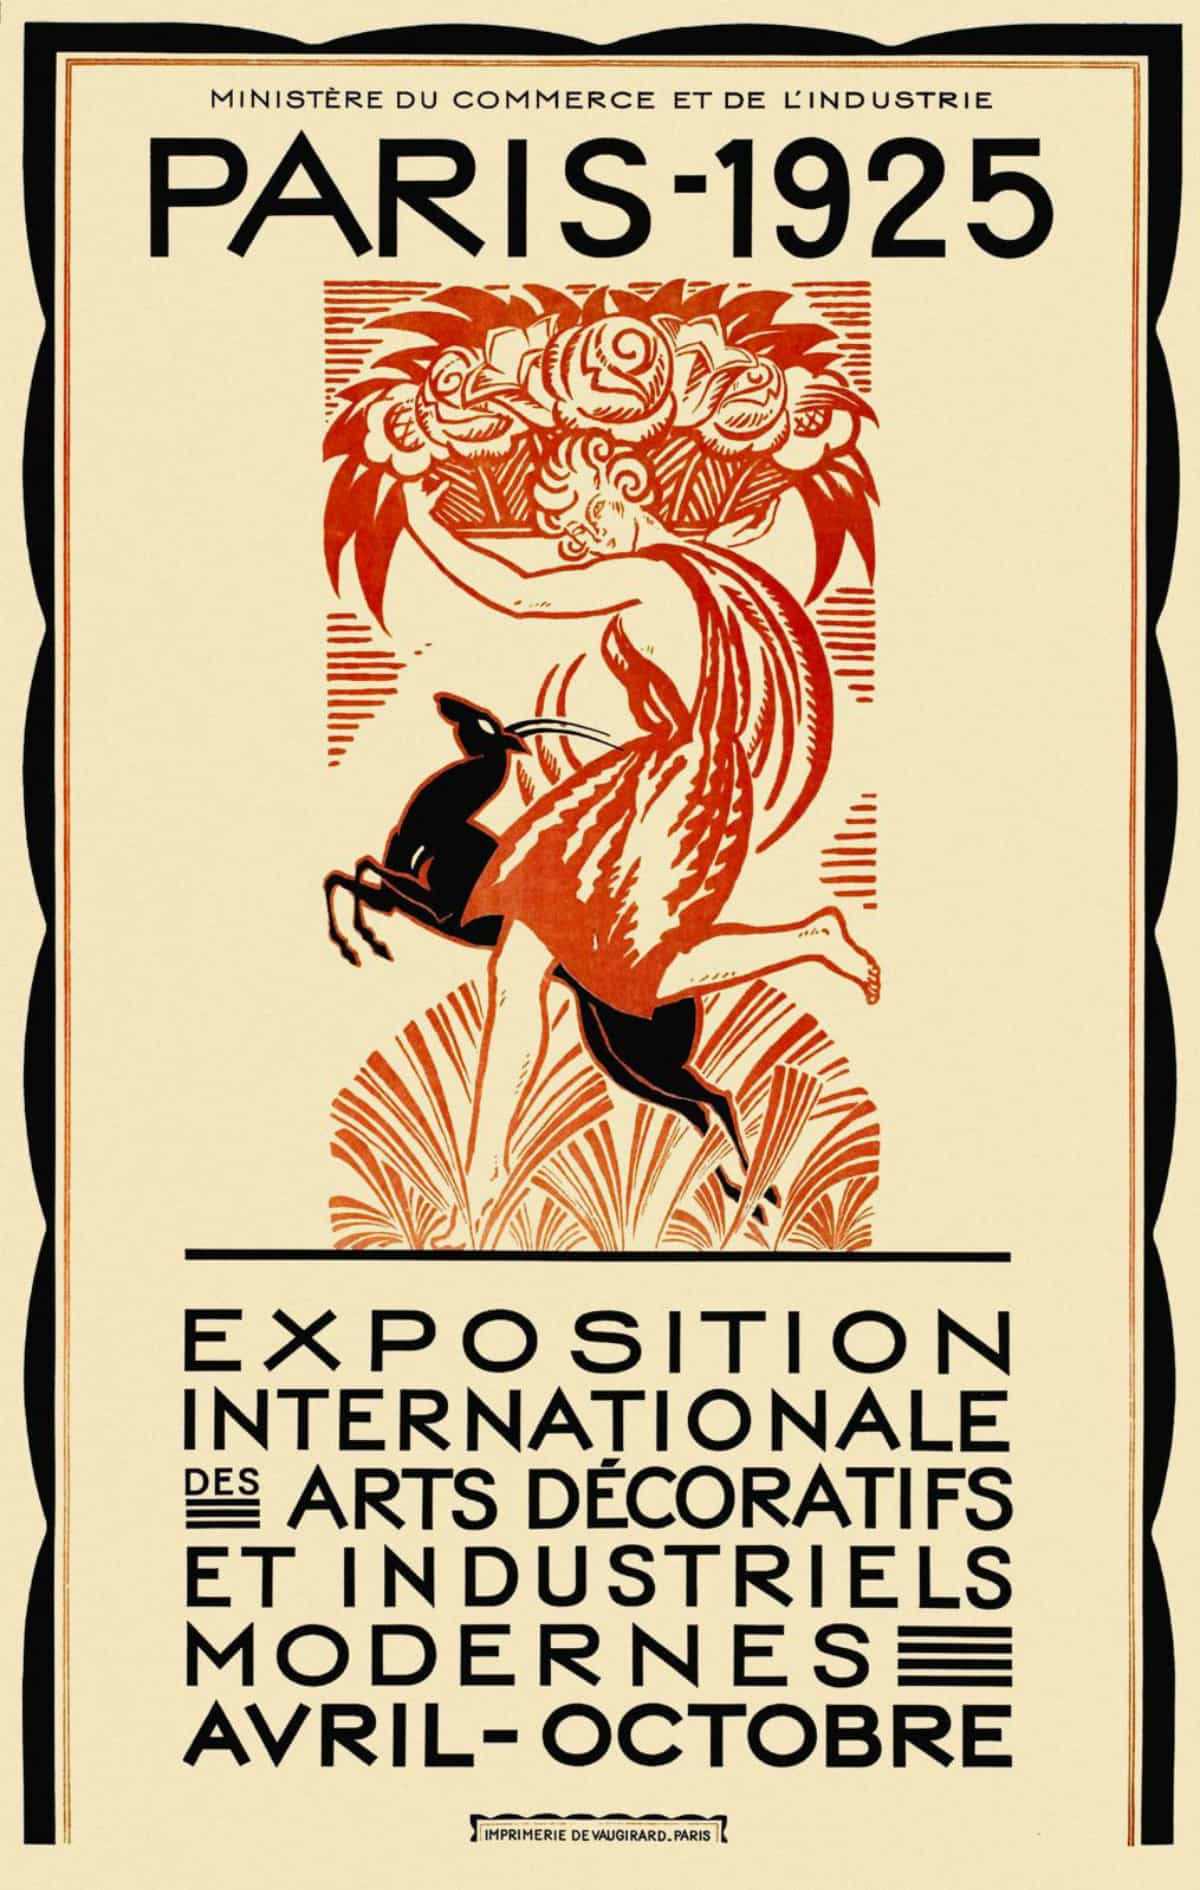 1925 Pariser Ausstellung Internationale des Arts Decoratifs et Industriels Modernes